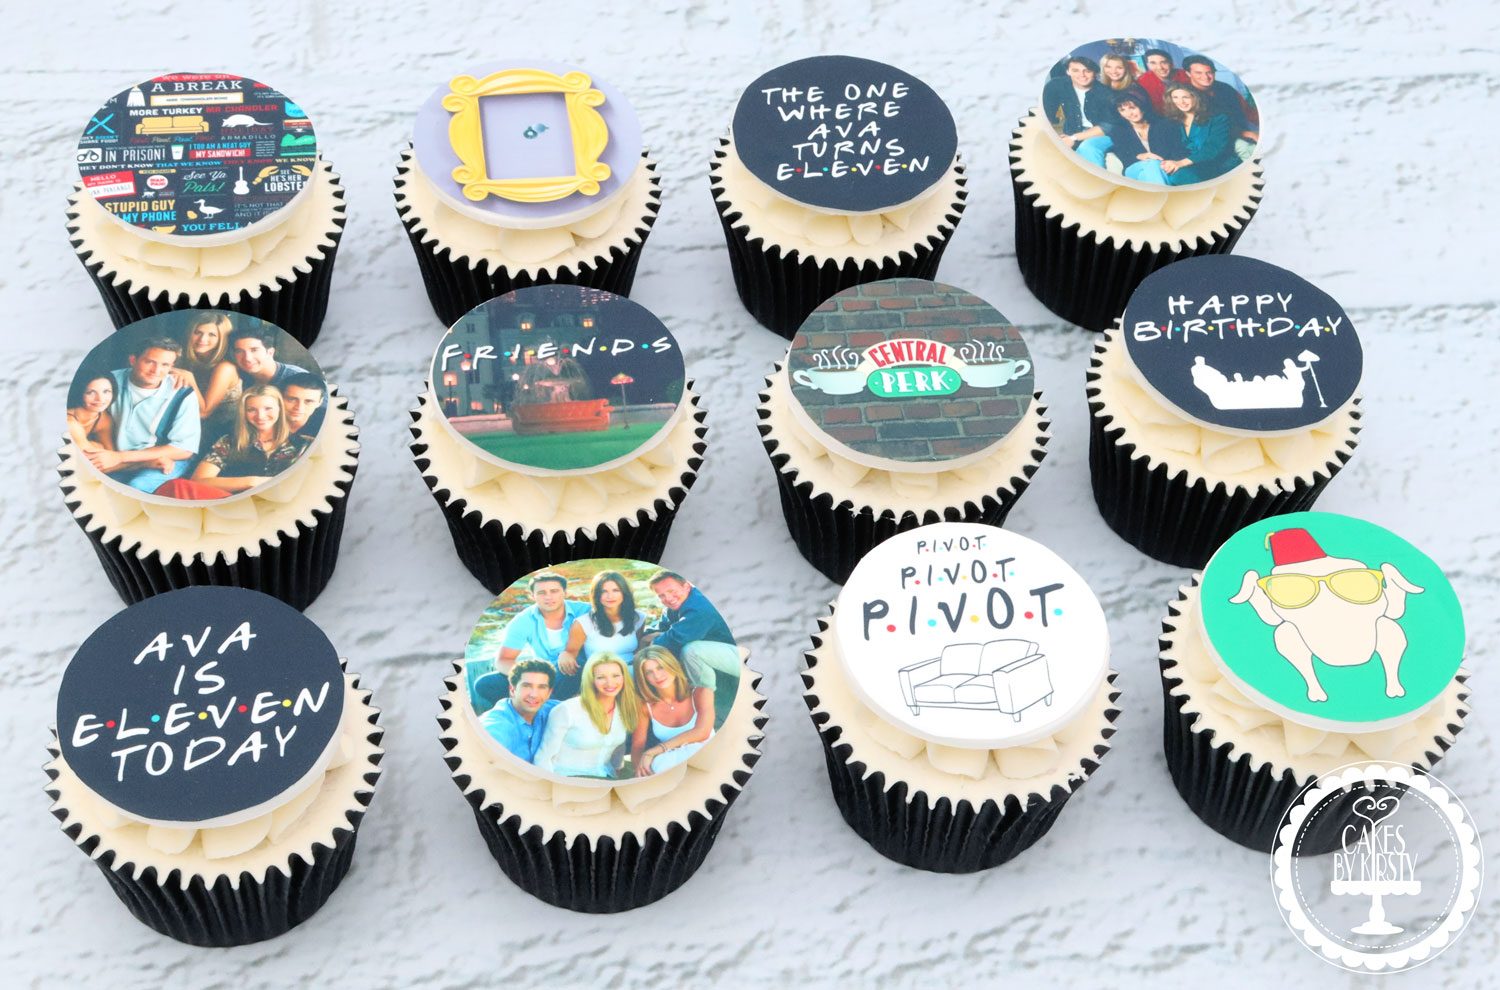 20200920 - Friends TV Show Cupcakes